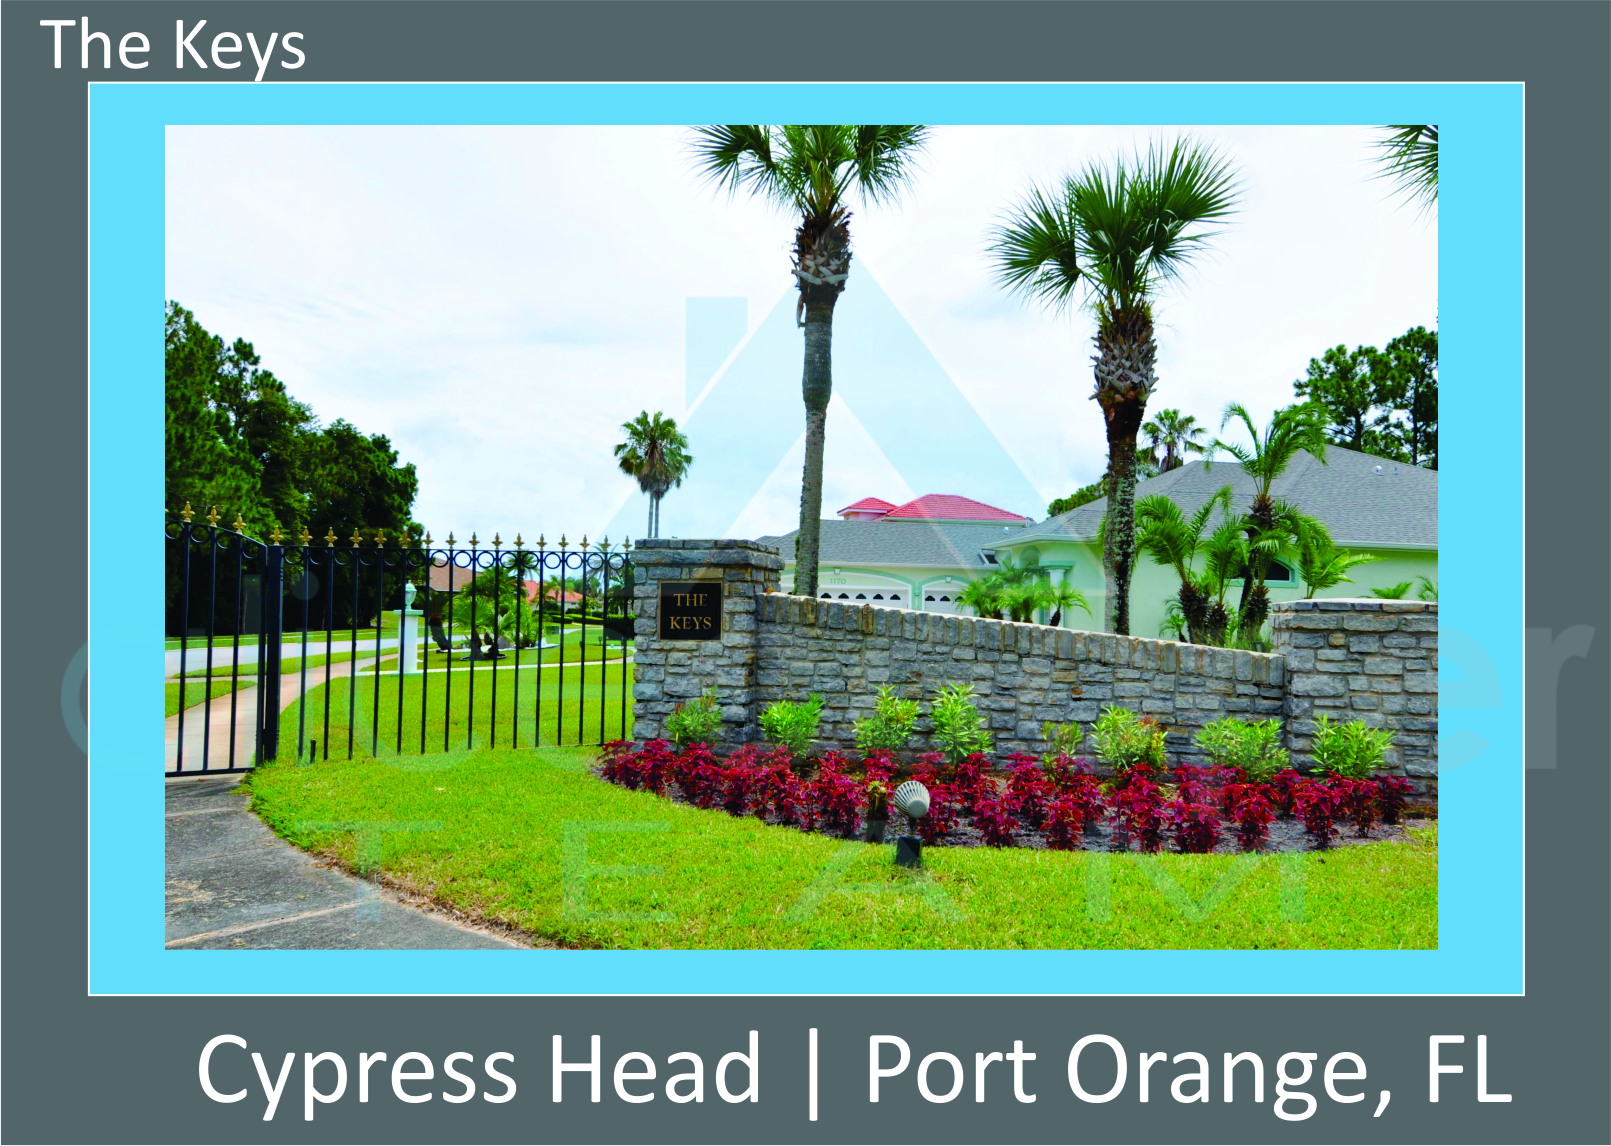 Cypress Head The Keys Neighborhood Entrance